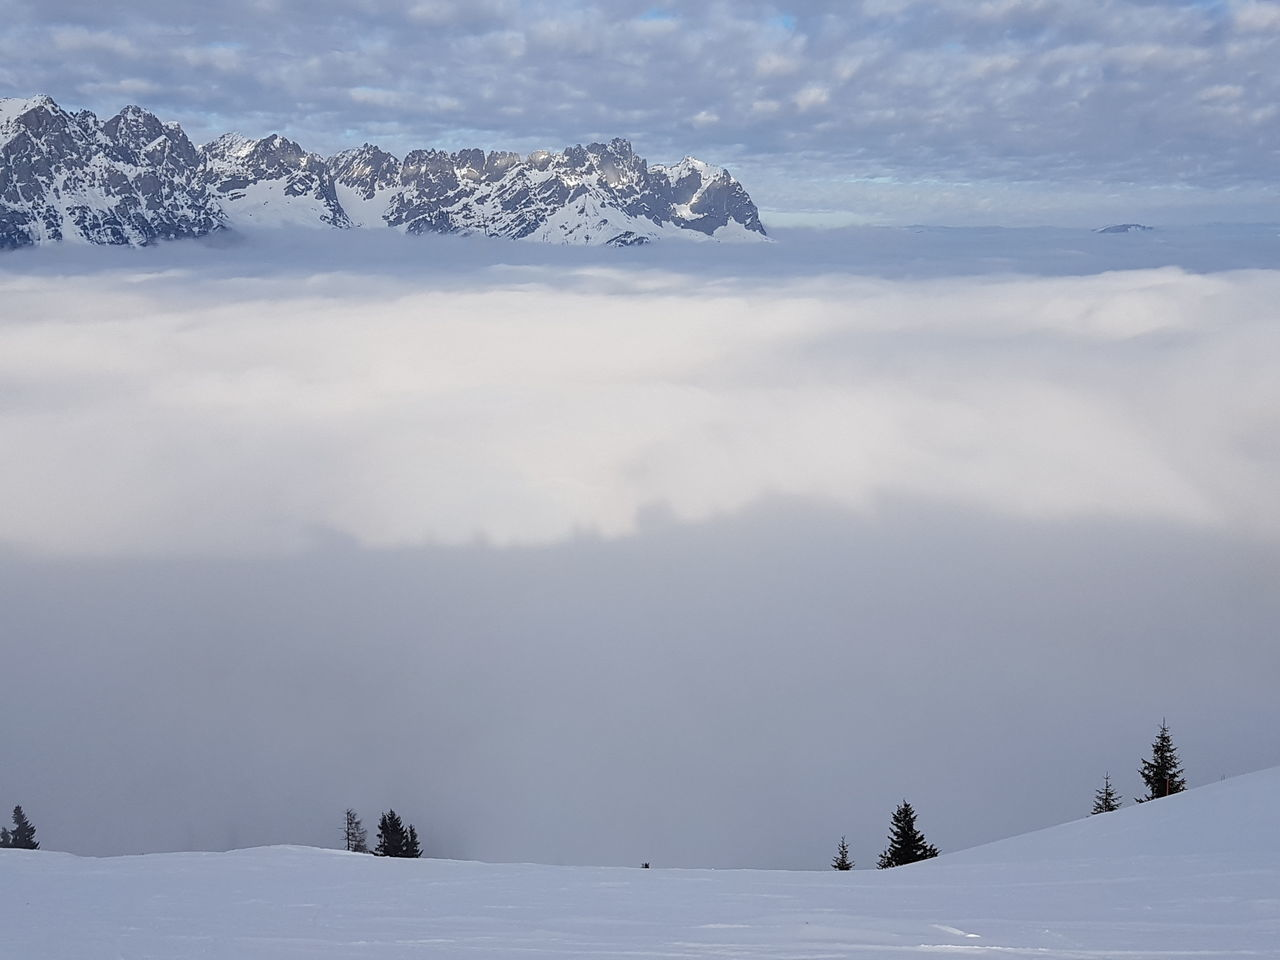 clouds over mountains Snow Clouds Scheffau Clouds And Sky Above The Clouds Ski Ski Resort  Austria Alps Alpine Mountain Range Outdoors Wilderness Nature Beauty In Nature Landscape Cold Temperature Mountain Snow Scenics Winter